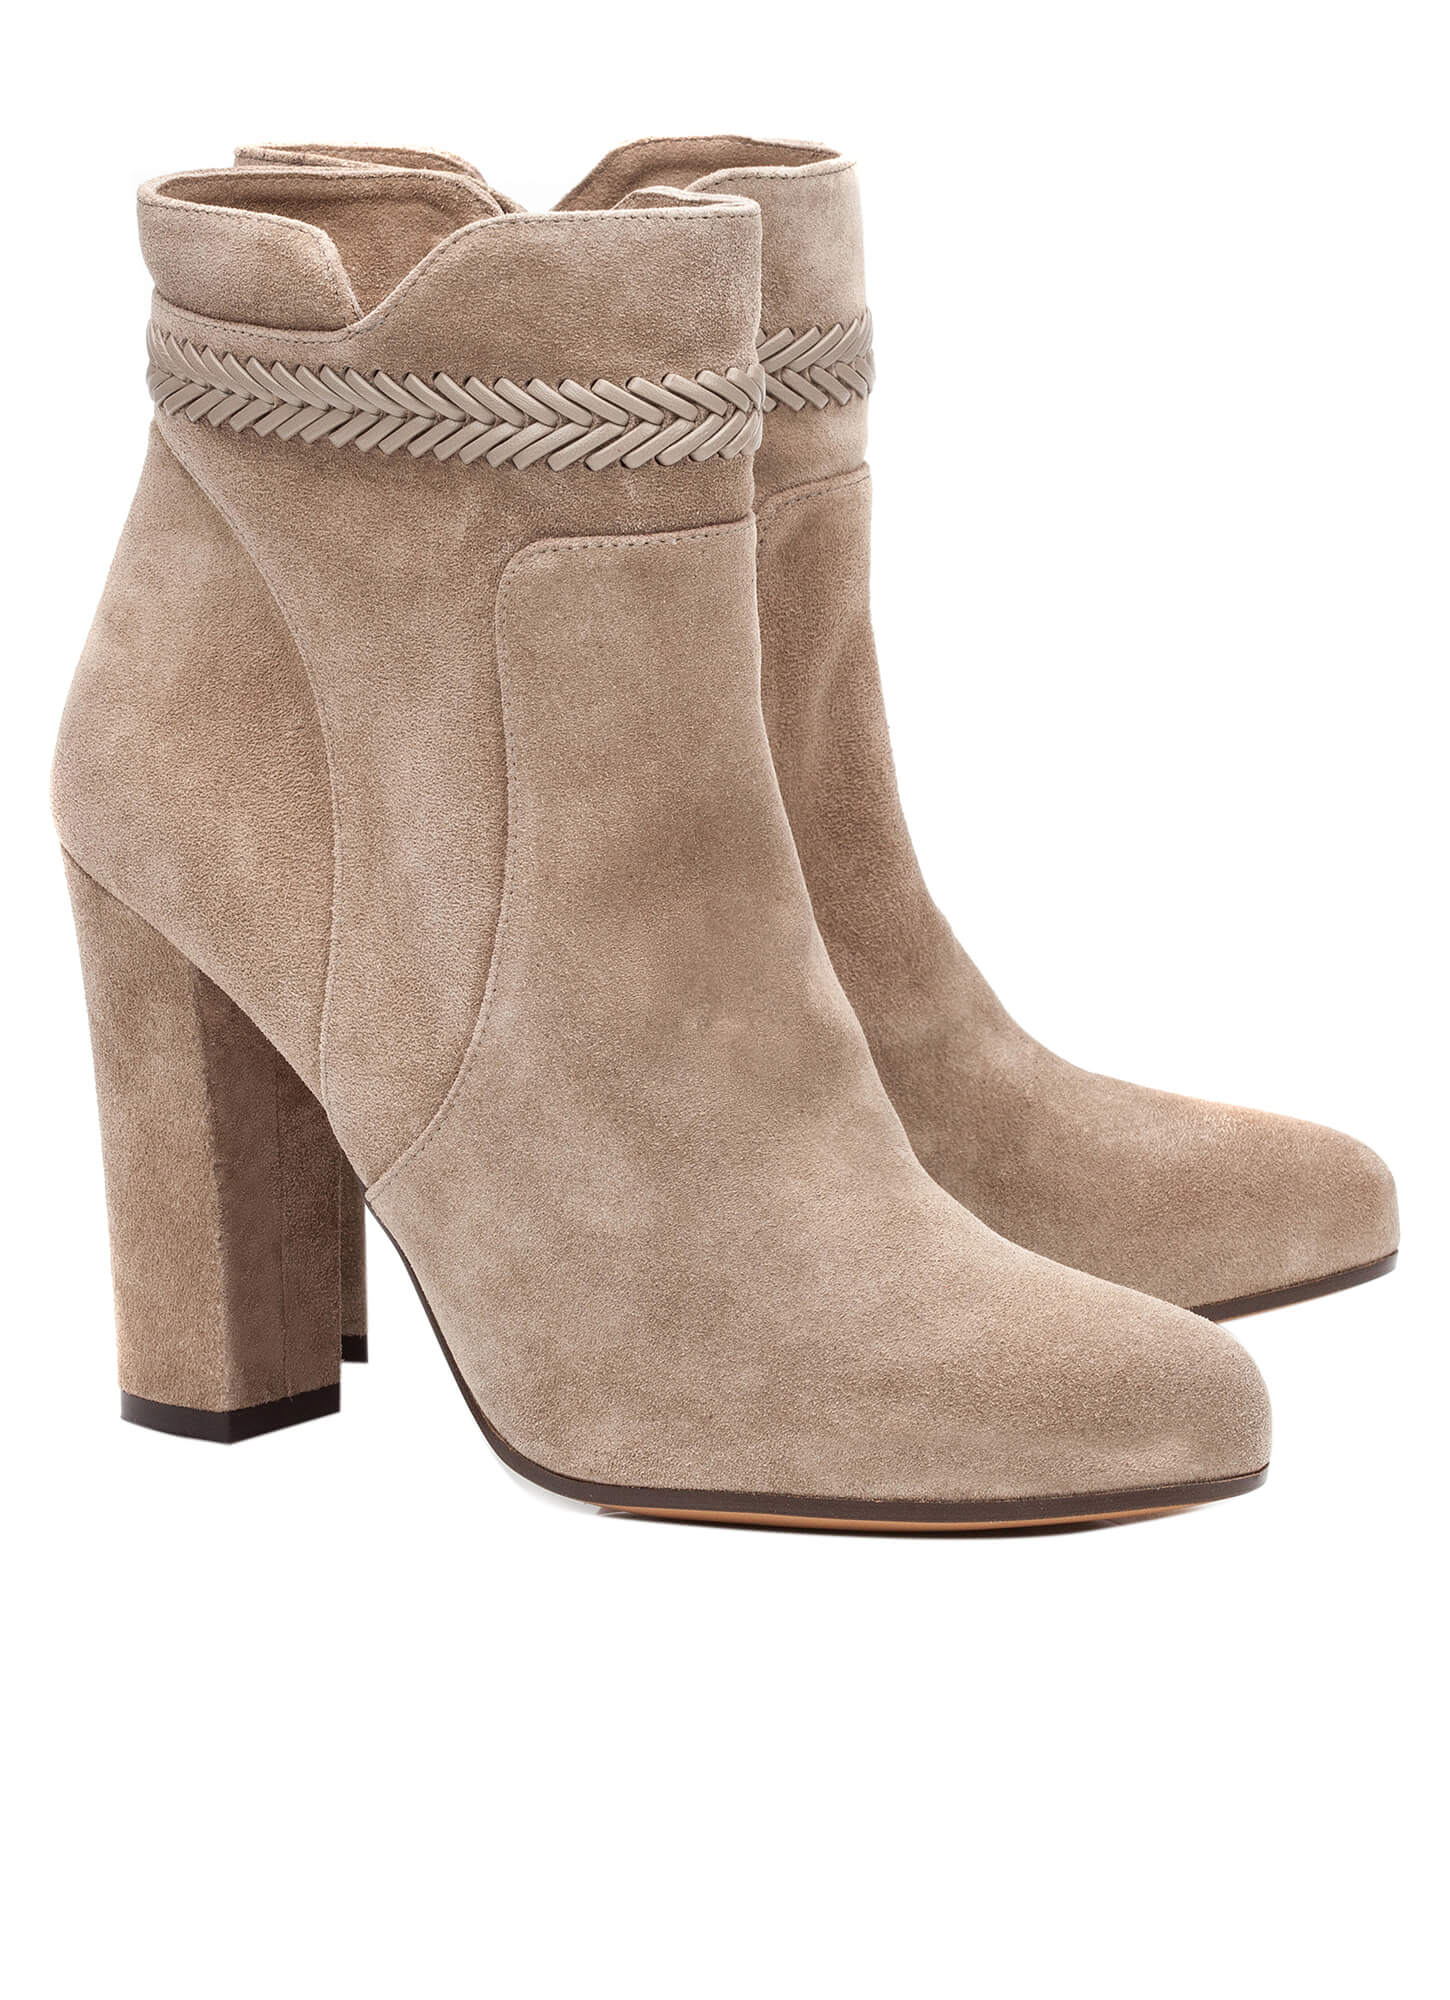 high heel ankle boots in taupe suede shoe store